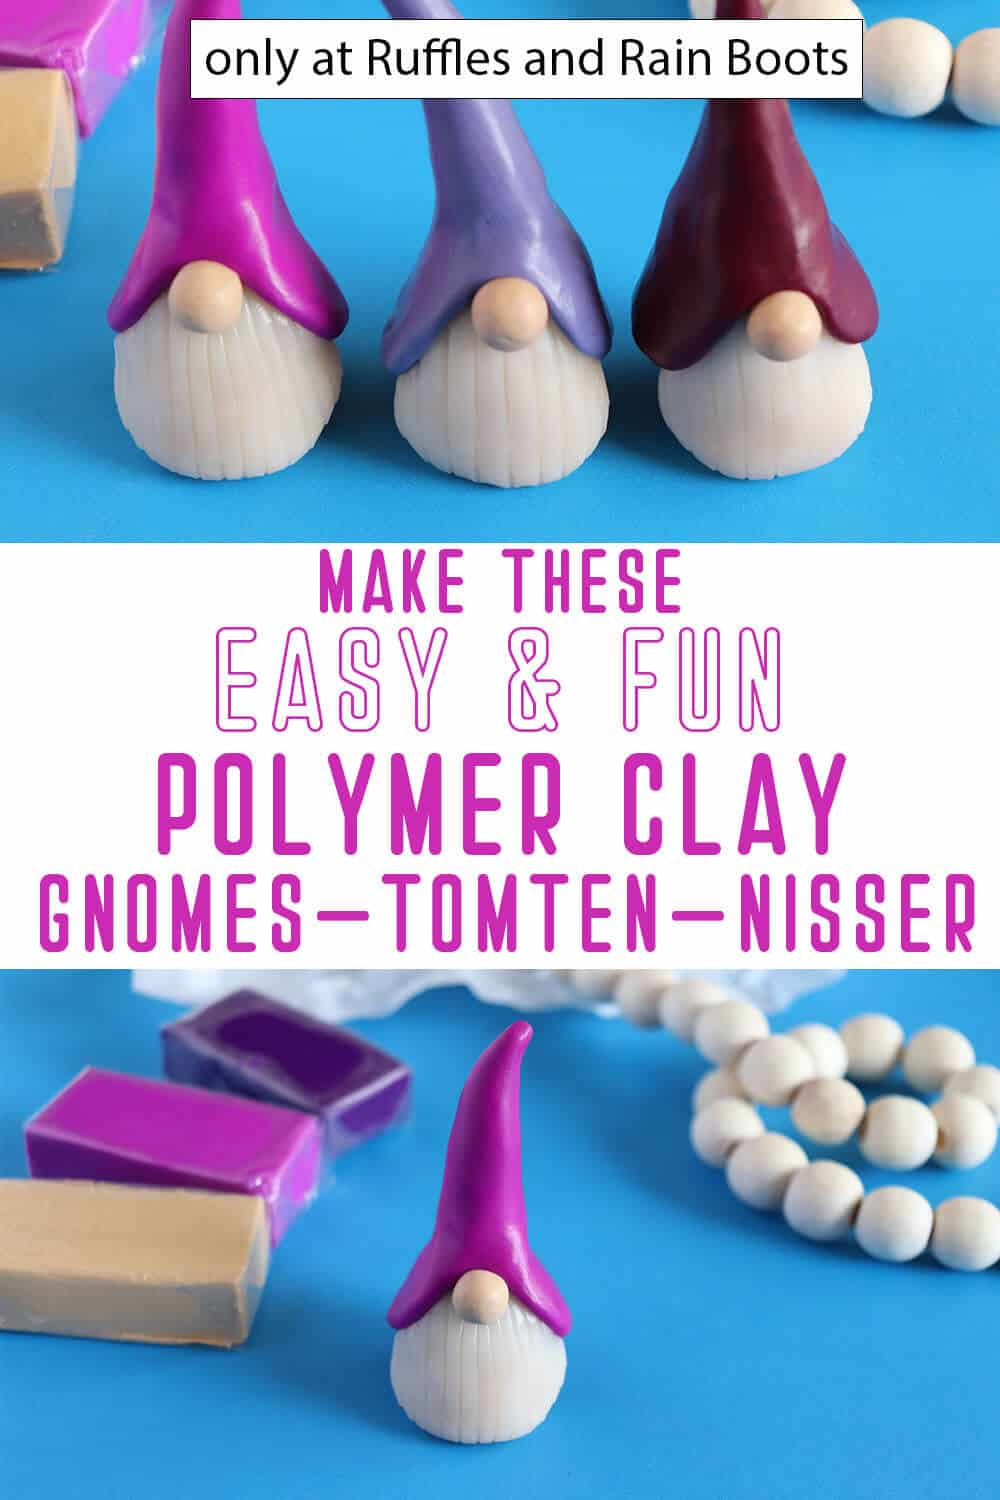 photo collage of easy diy clay gnomes with text which reads make these easy & fun polymer clay gnomes tomten nisser